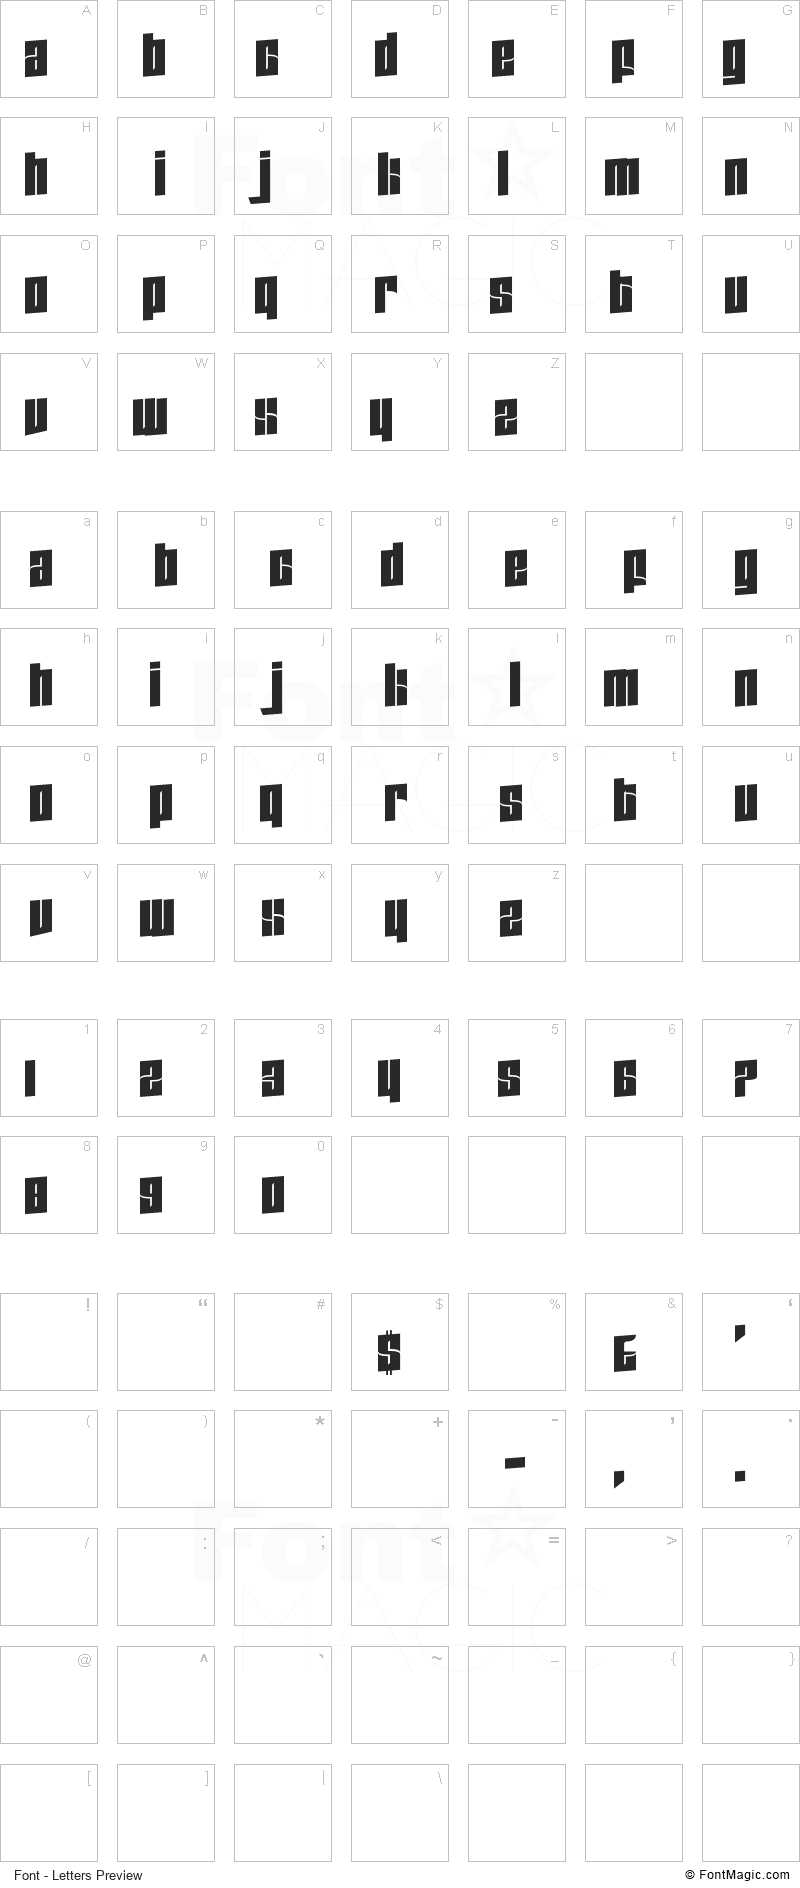 Zdyk Scorpio Font - All Latters Preview Chart